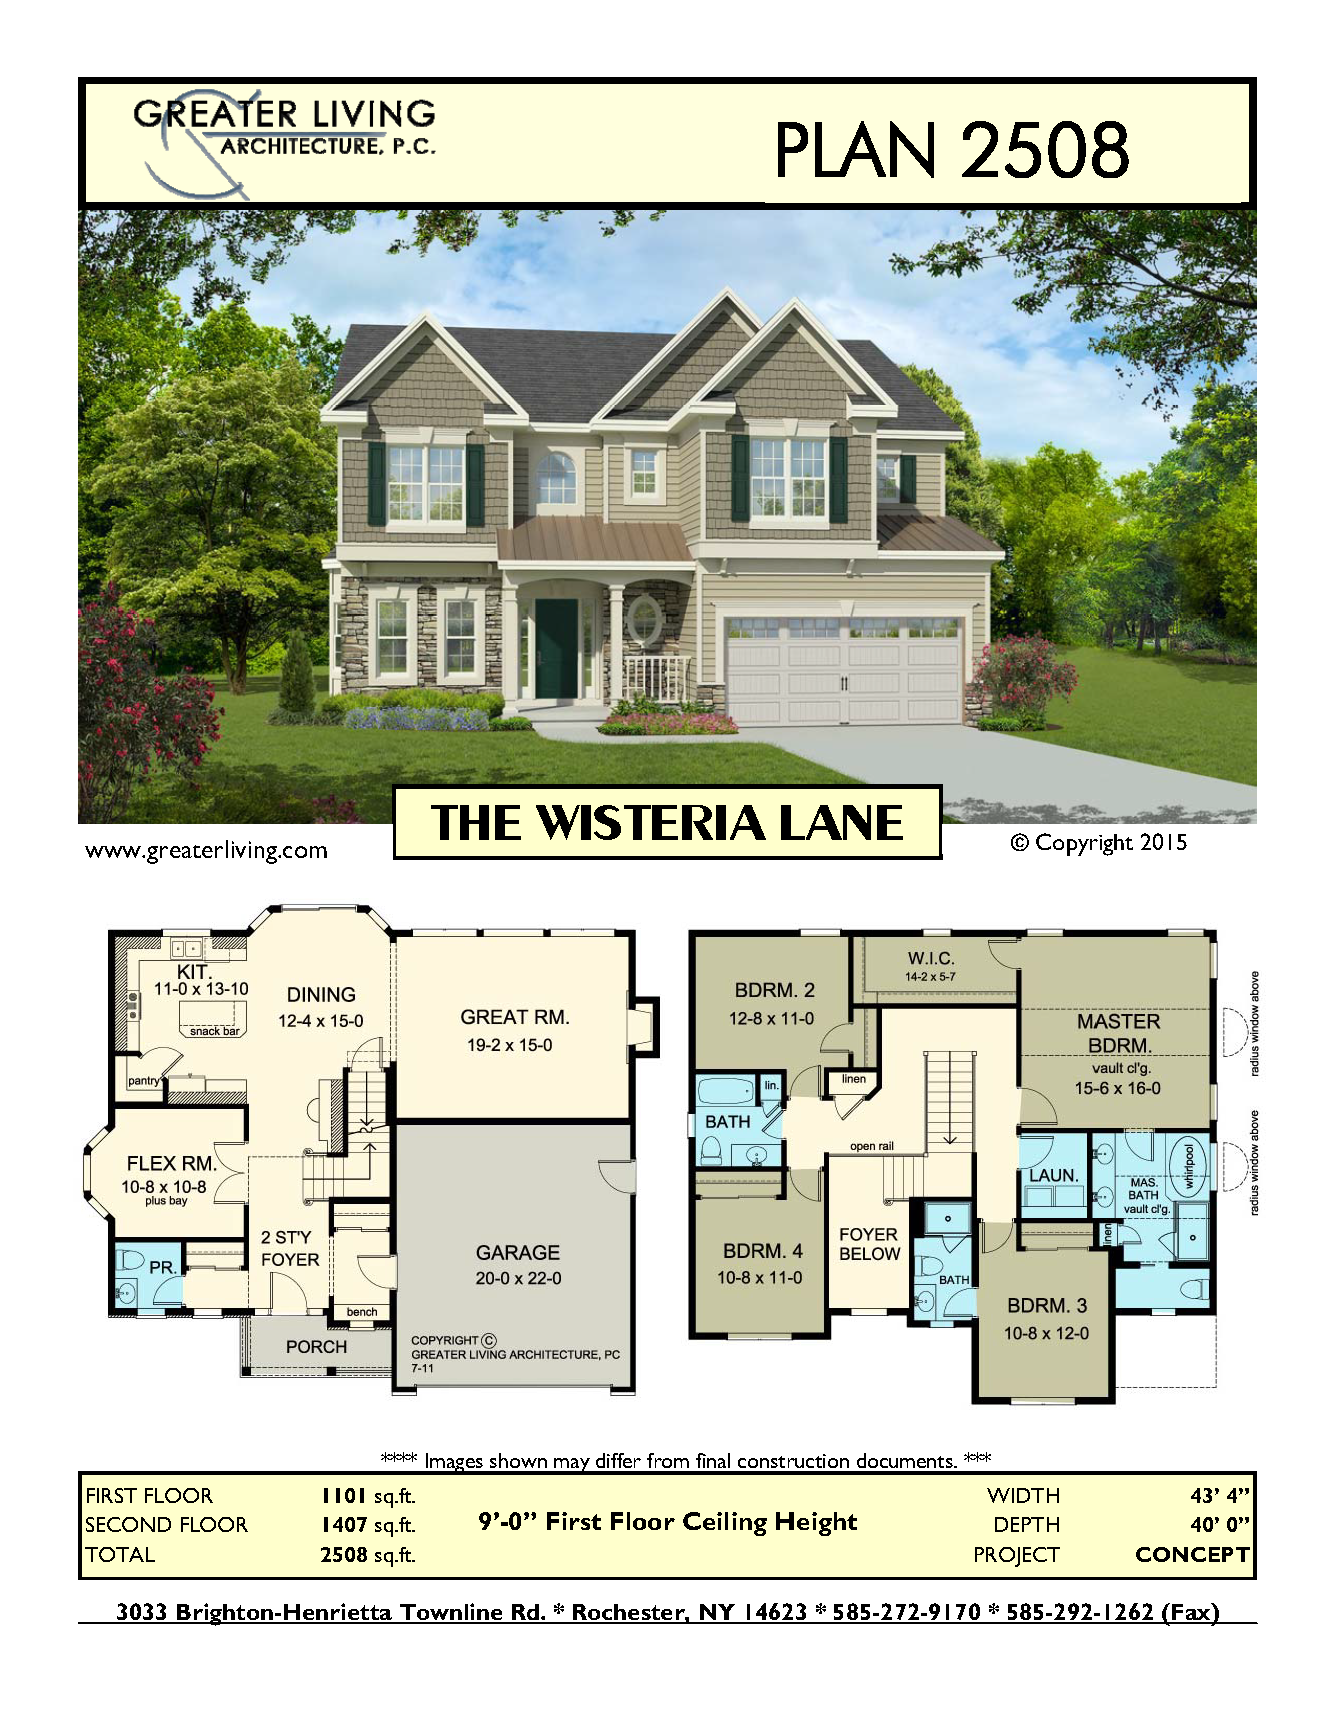 plan 2508 the wisteria lane house plans two story house plans plan 2508 the wisteria lane house plans two story house plans 2